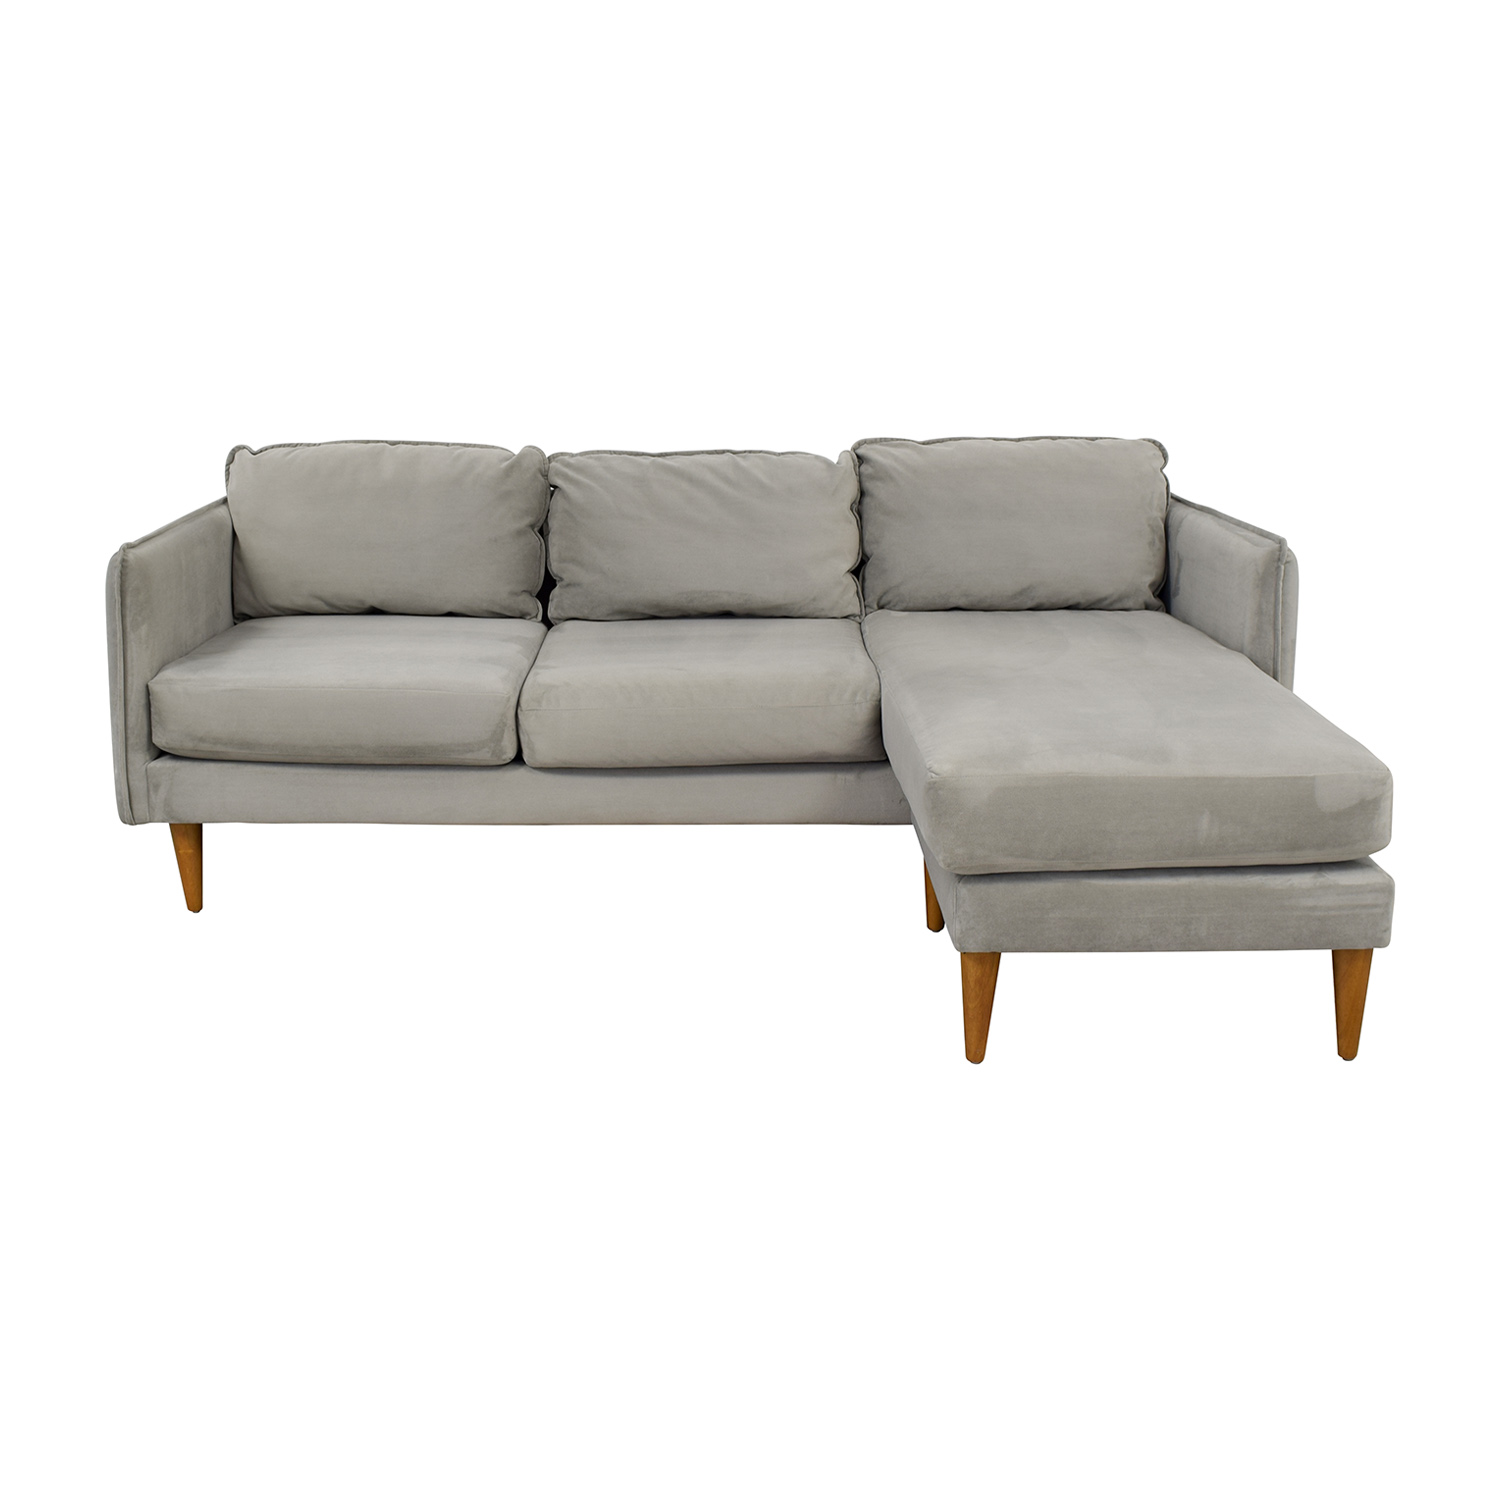 West Elm West Elm Mid Century Chaise Sectional Sofa for sale